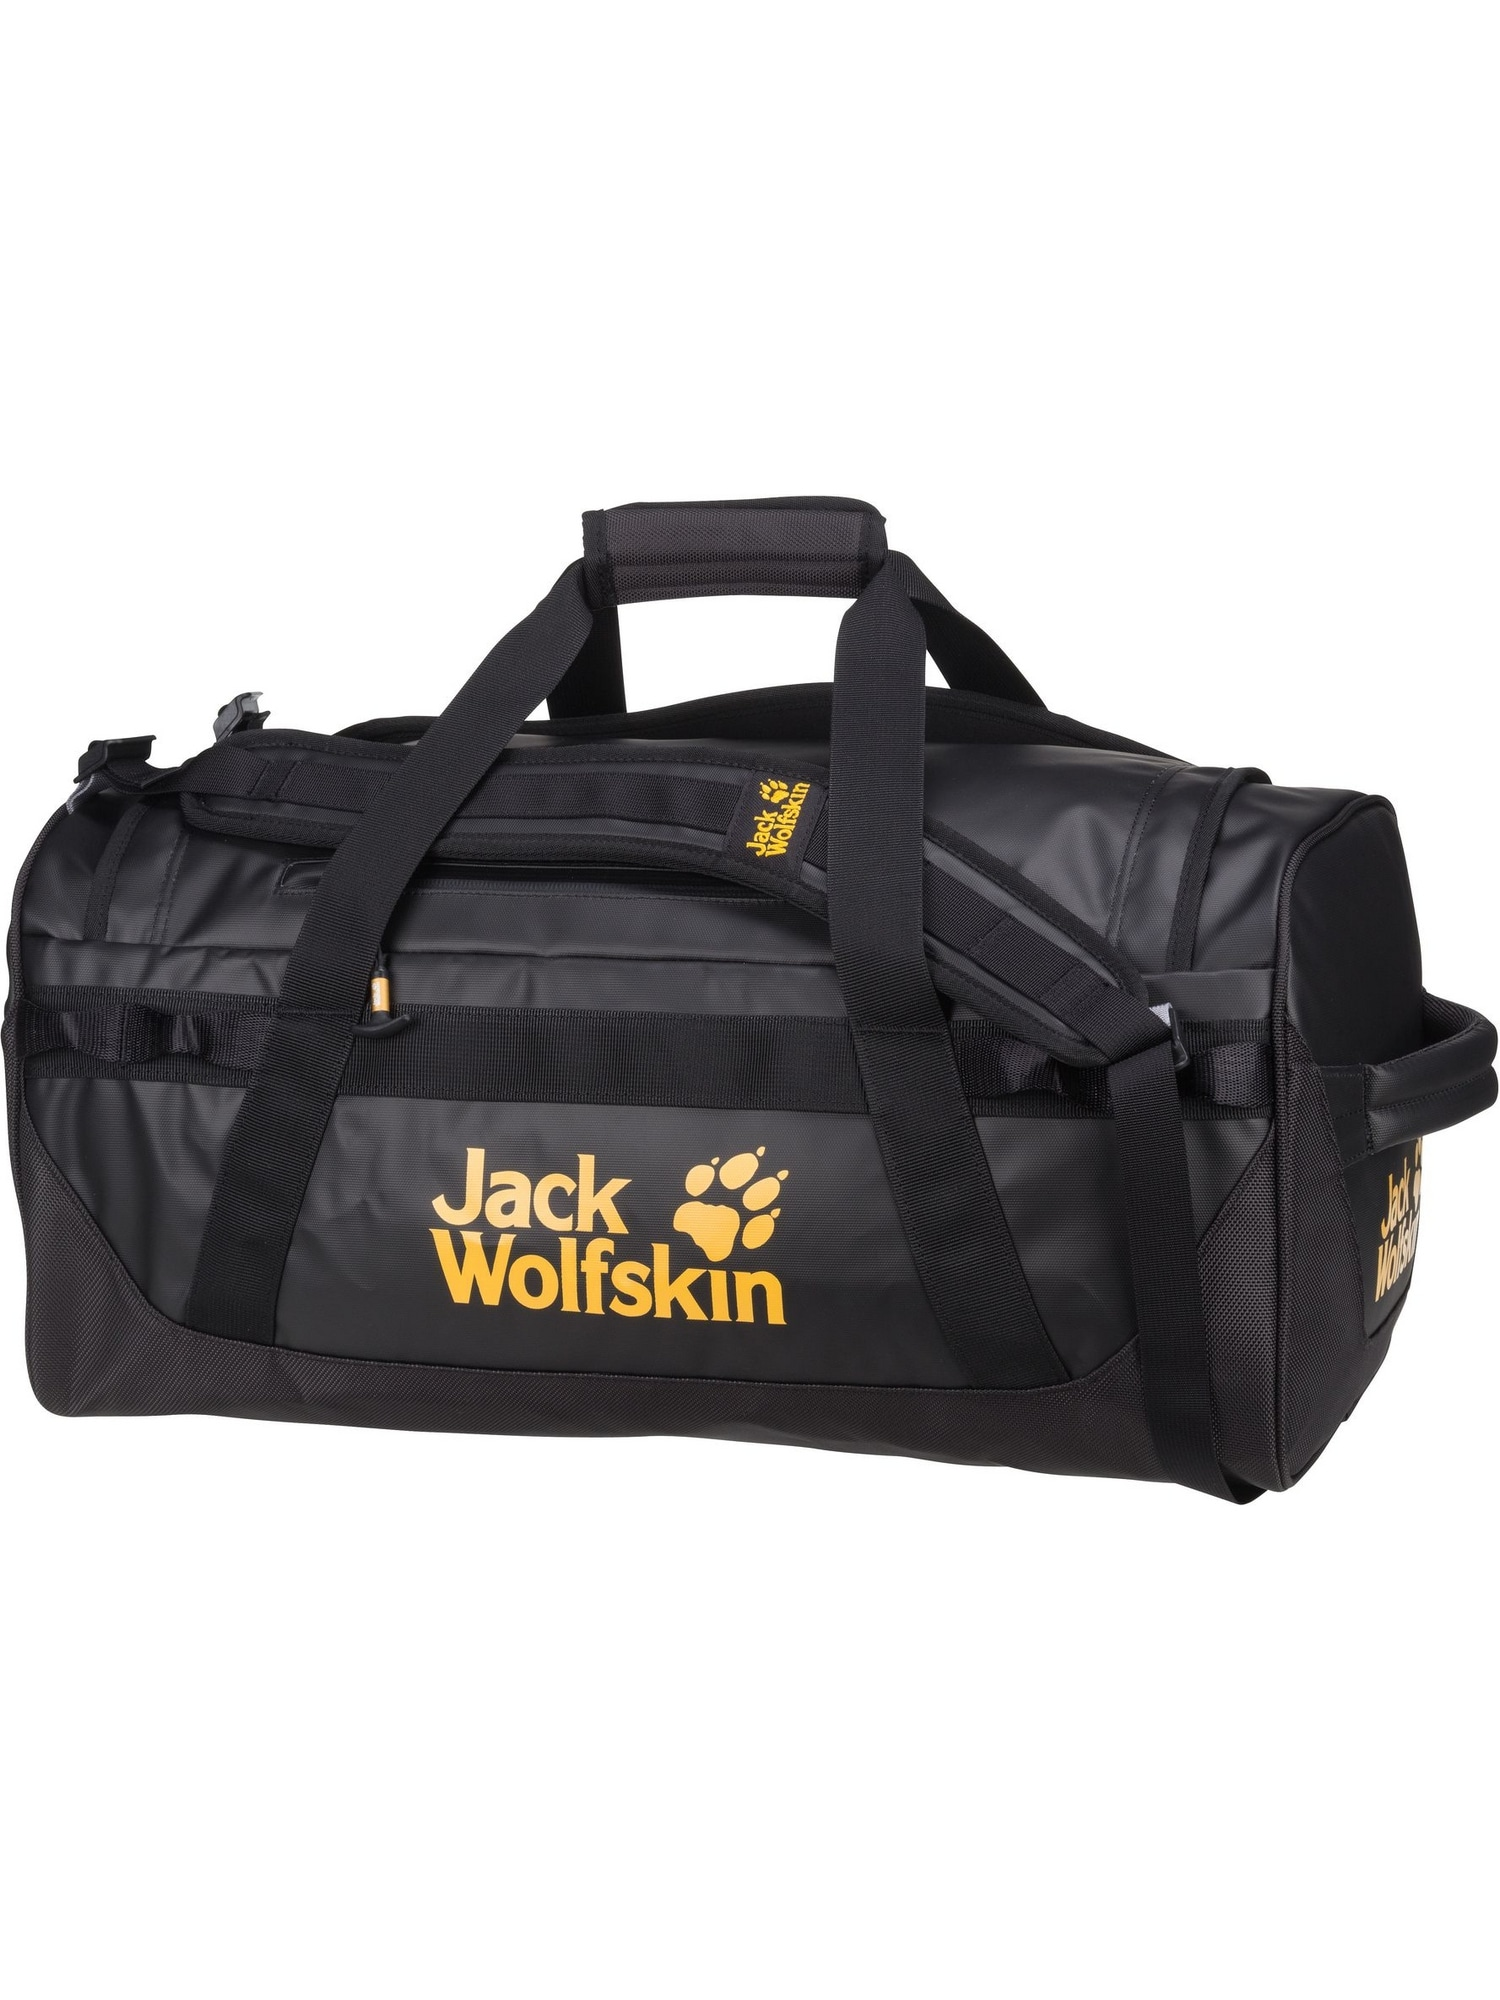 jack wolfskin - Reisetasche 'Expedition Trunk'